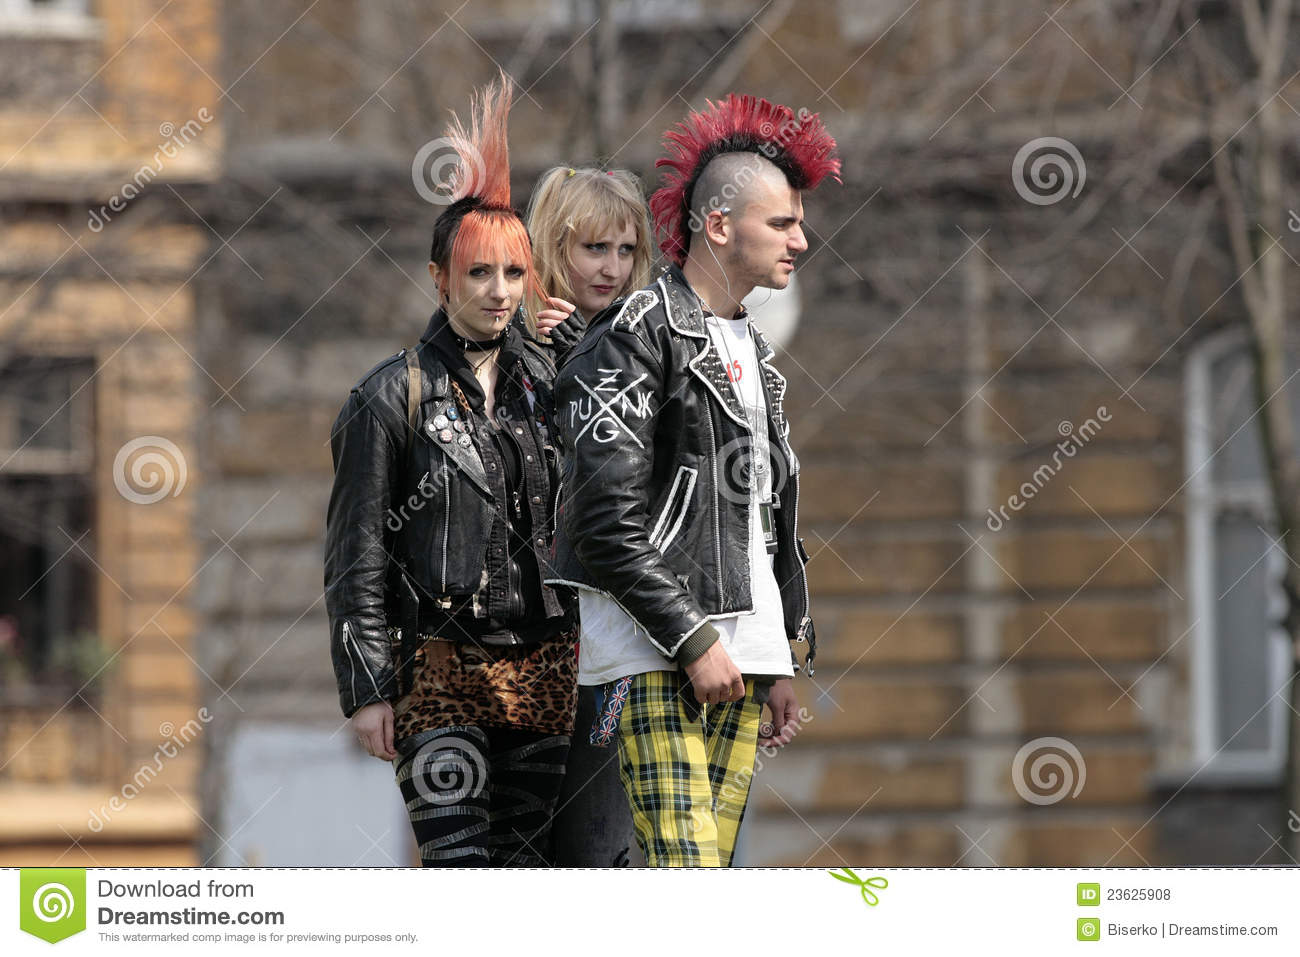 Punk Fashion Editorial Spike